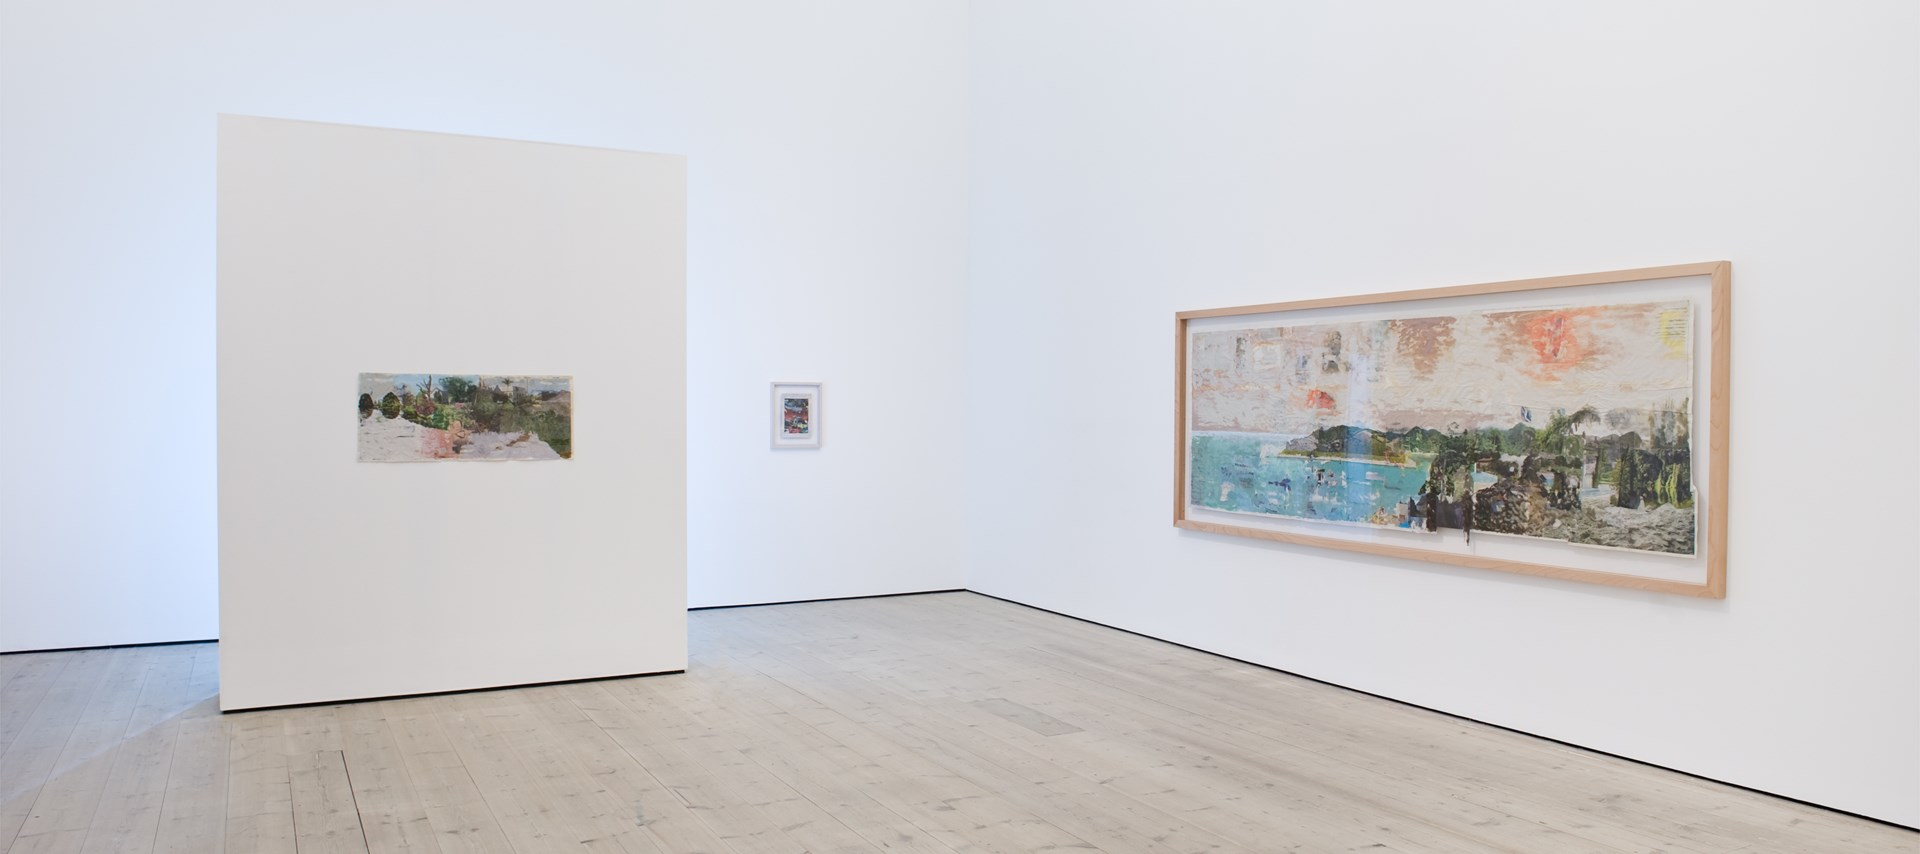 Tony Swain: Undetailed Progress: Installation View: Image by Colin Davison